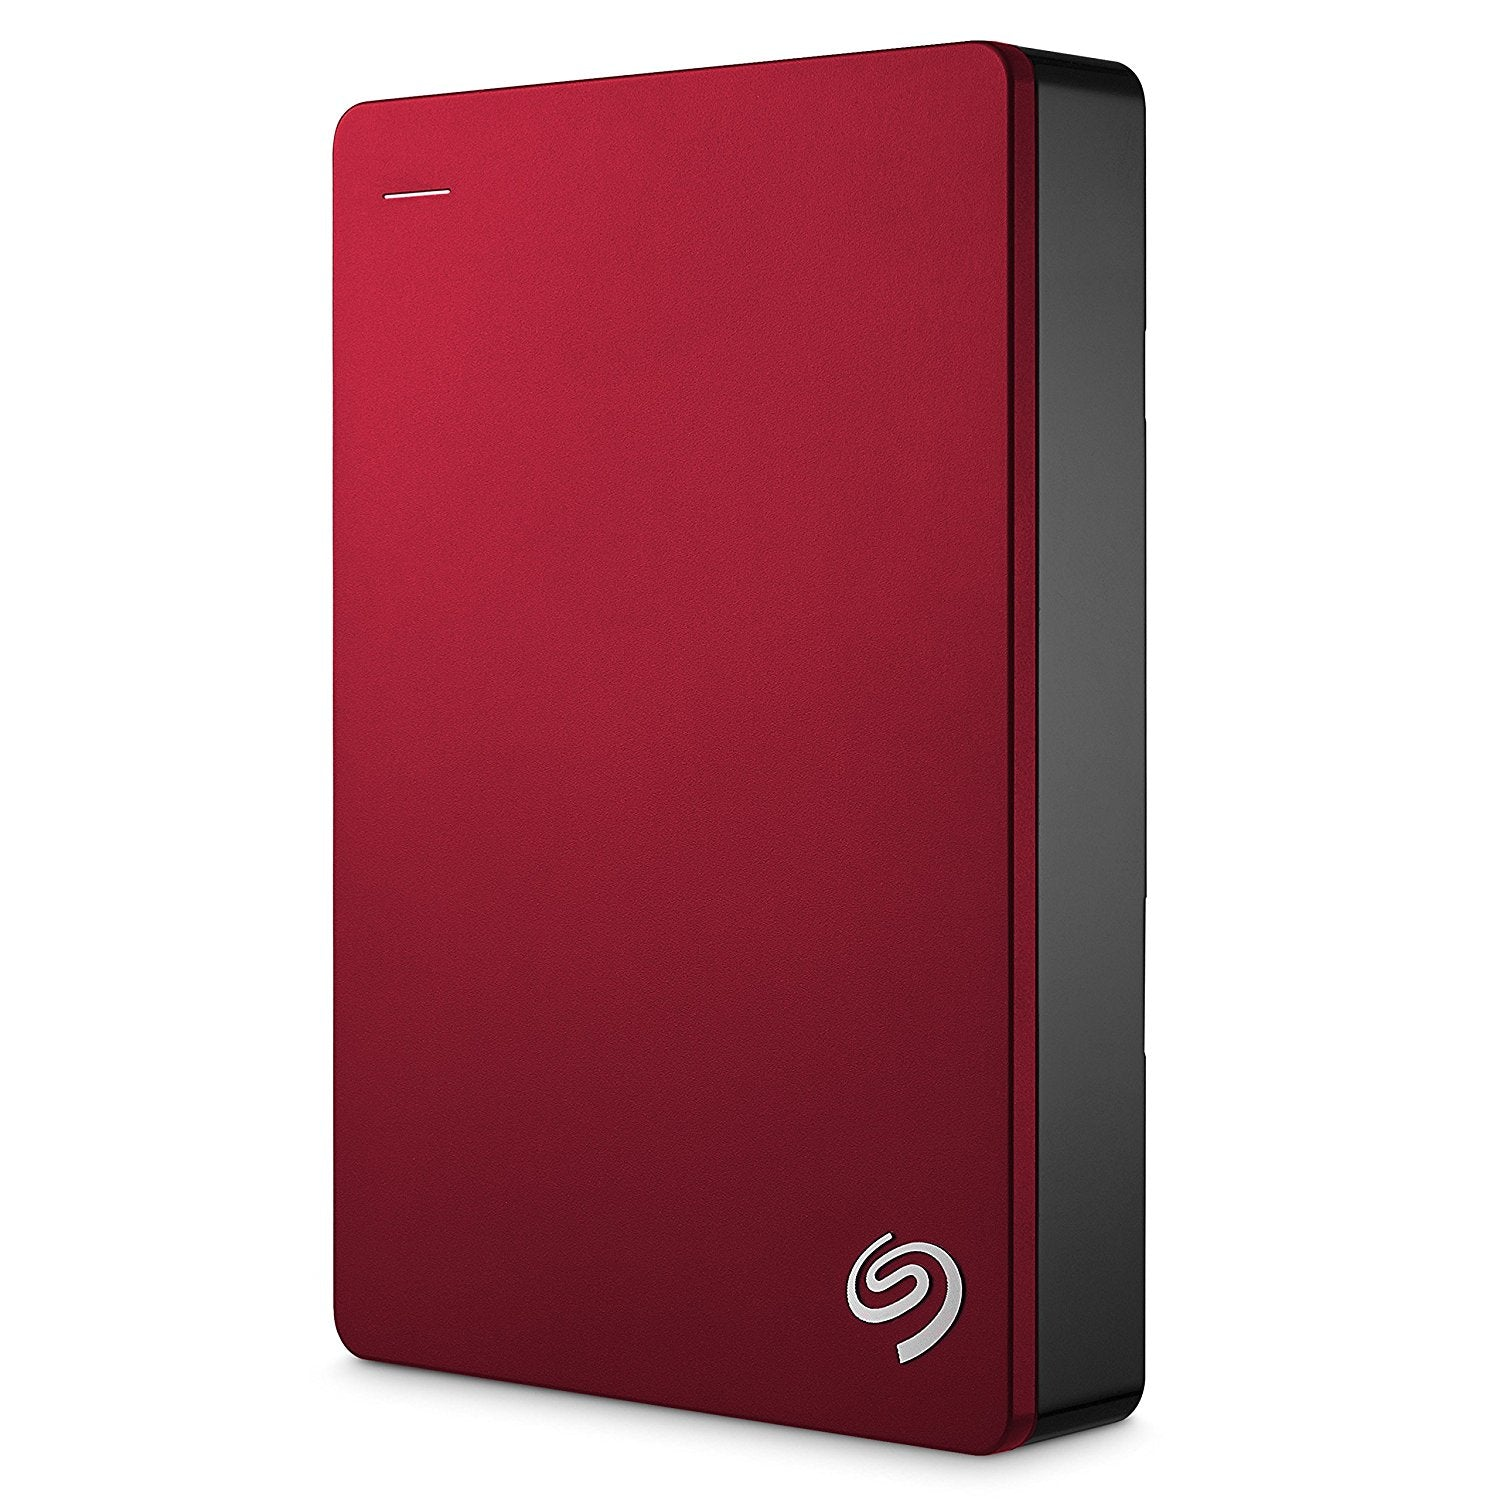 Seagate Backup Plus 4TB Portable External Hard Drive USB 3.0, Red (STDR4000303